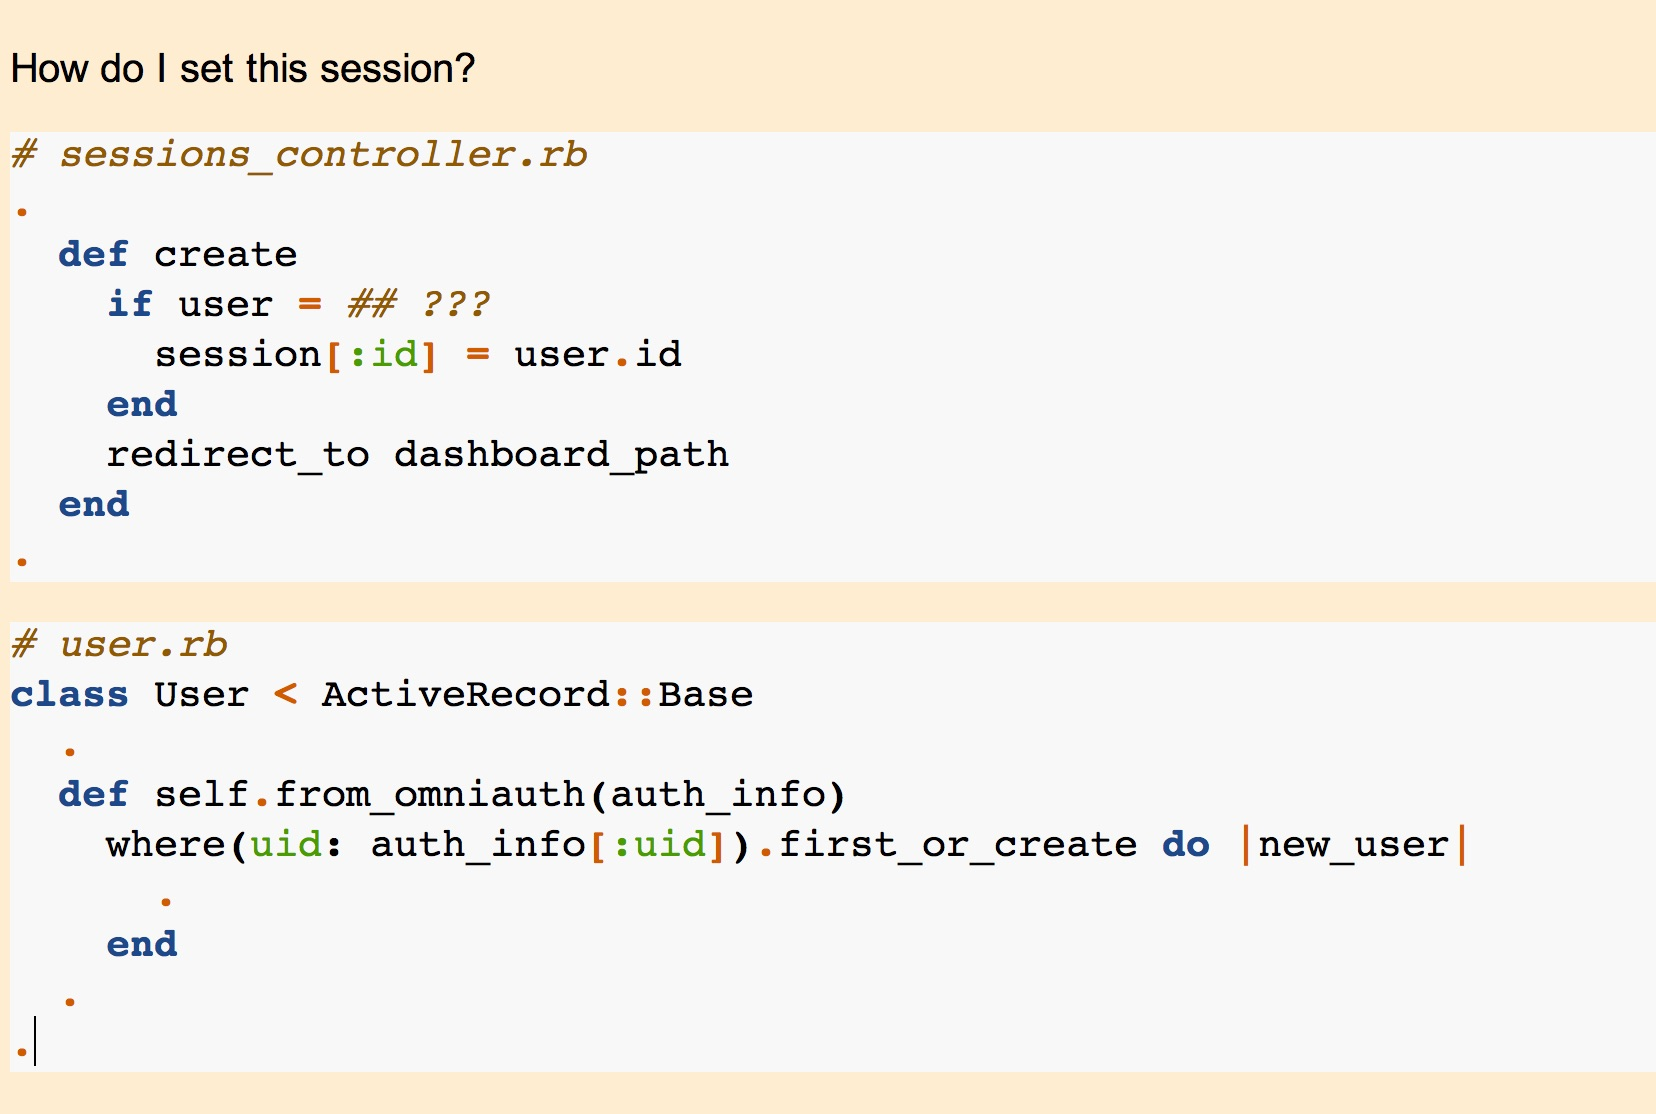 Anki card for using OmniAuth to manage user session